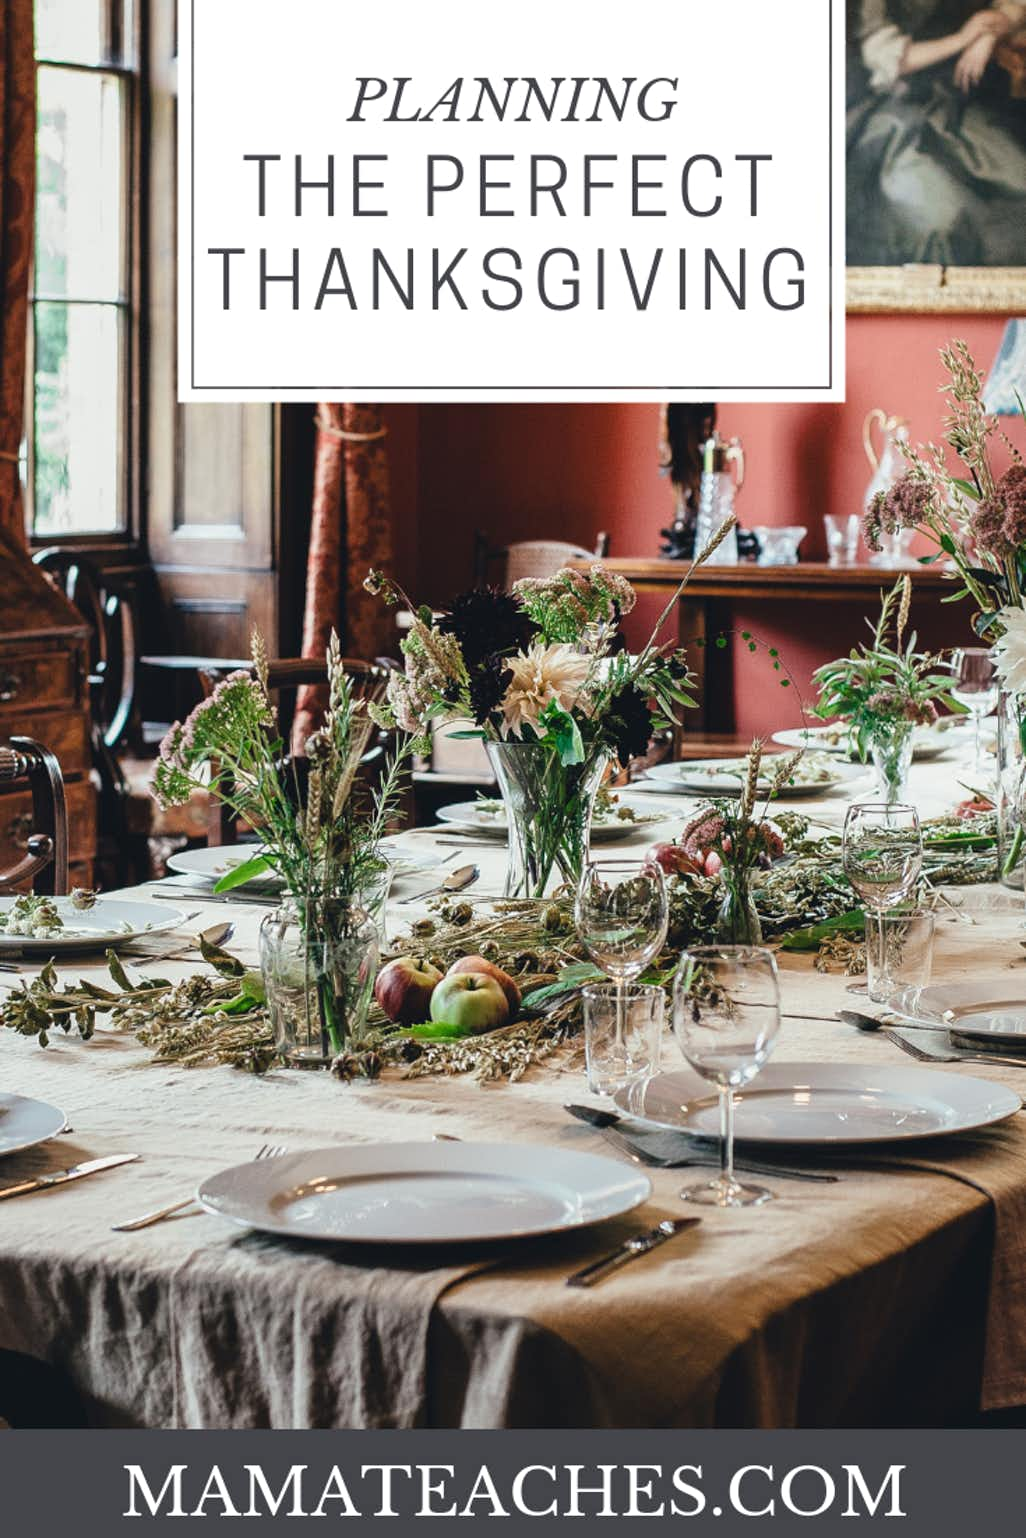 Planning the Perfect Thanksgiving